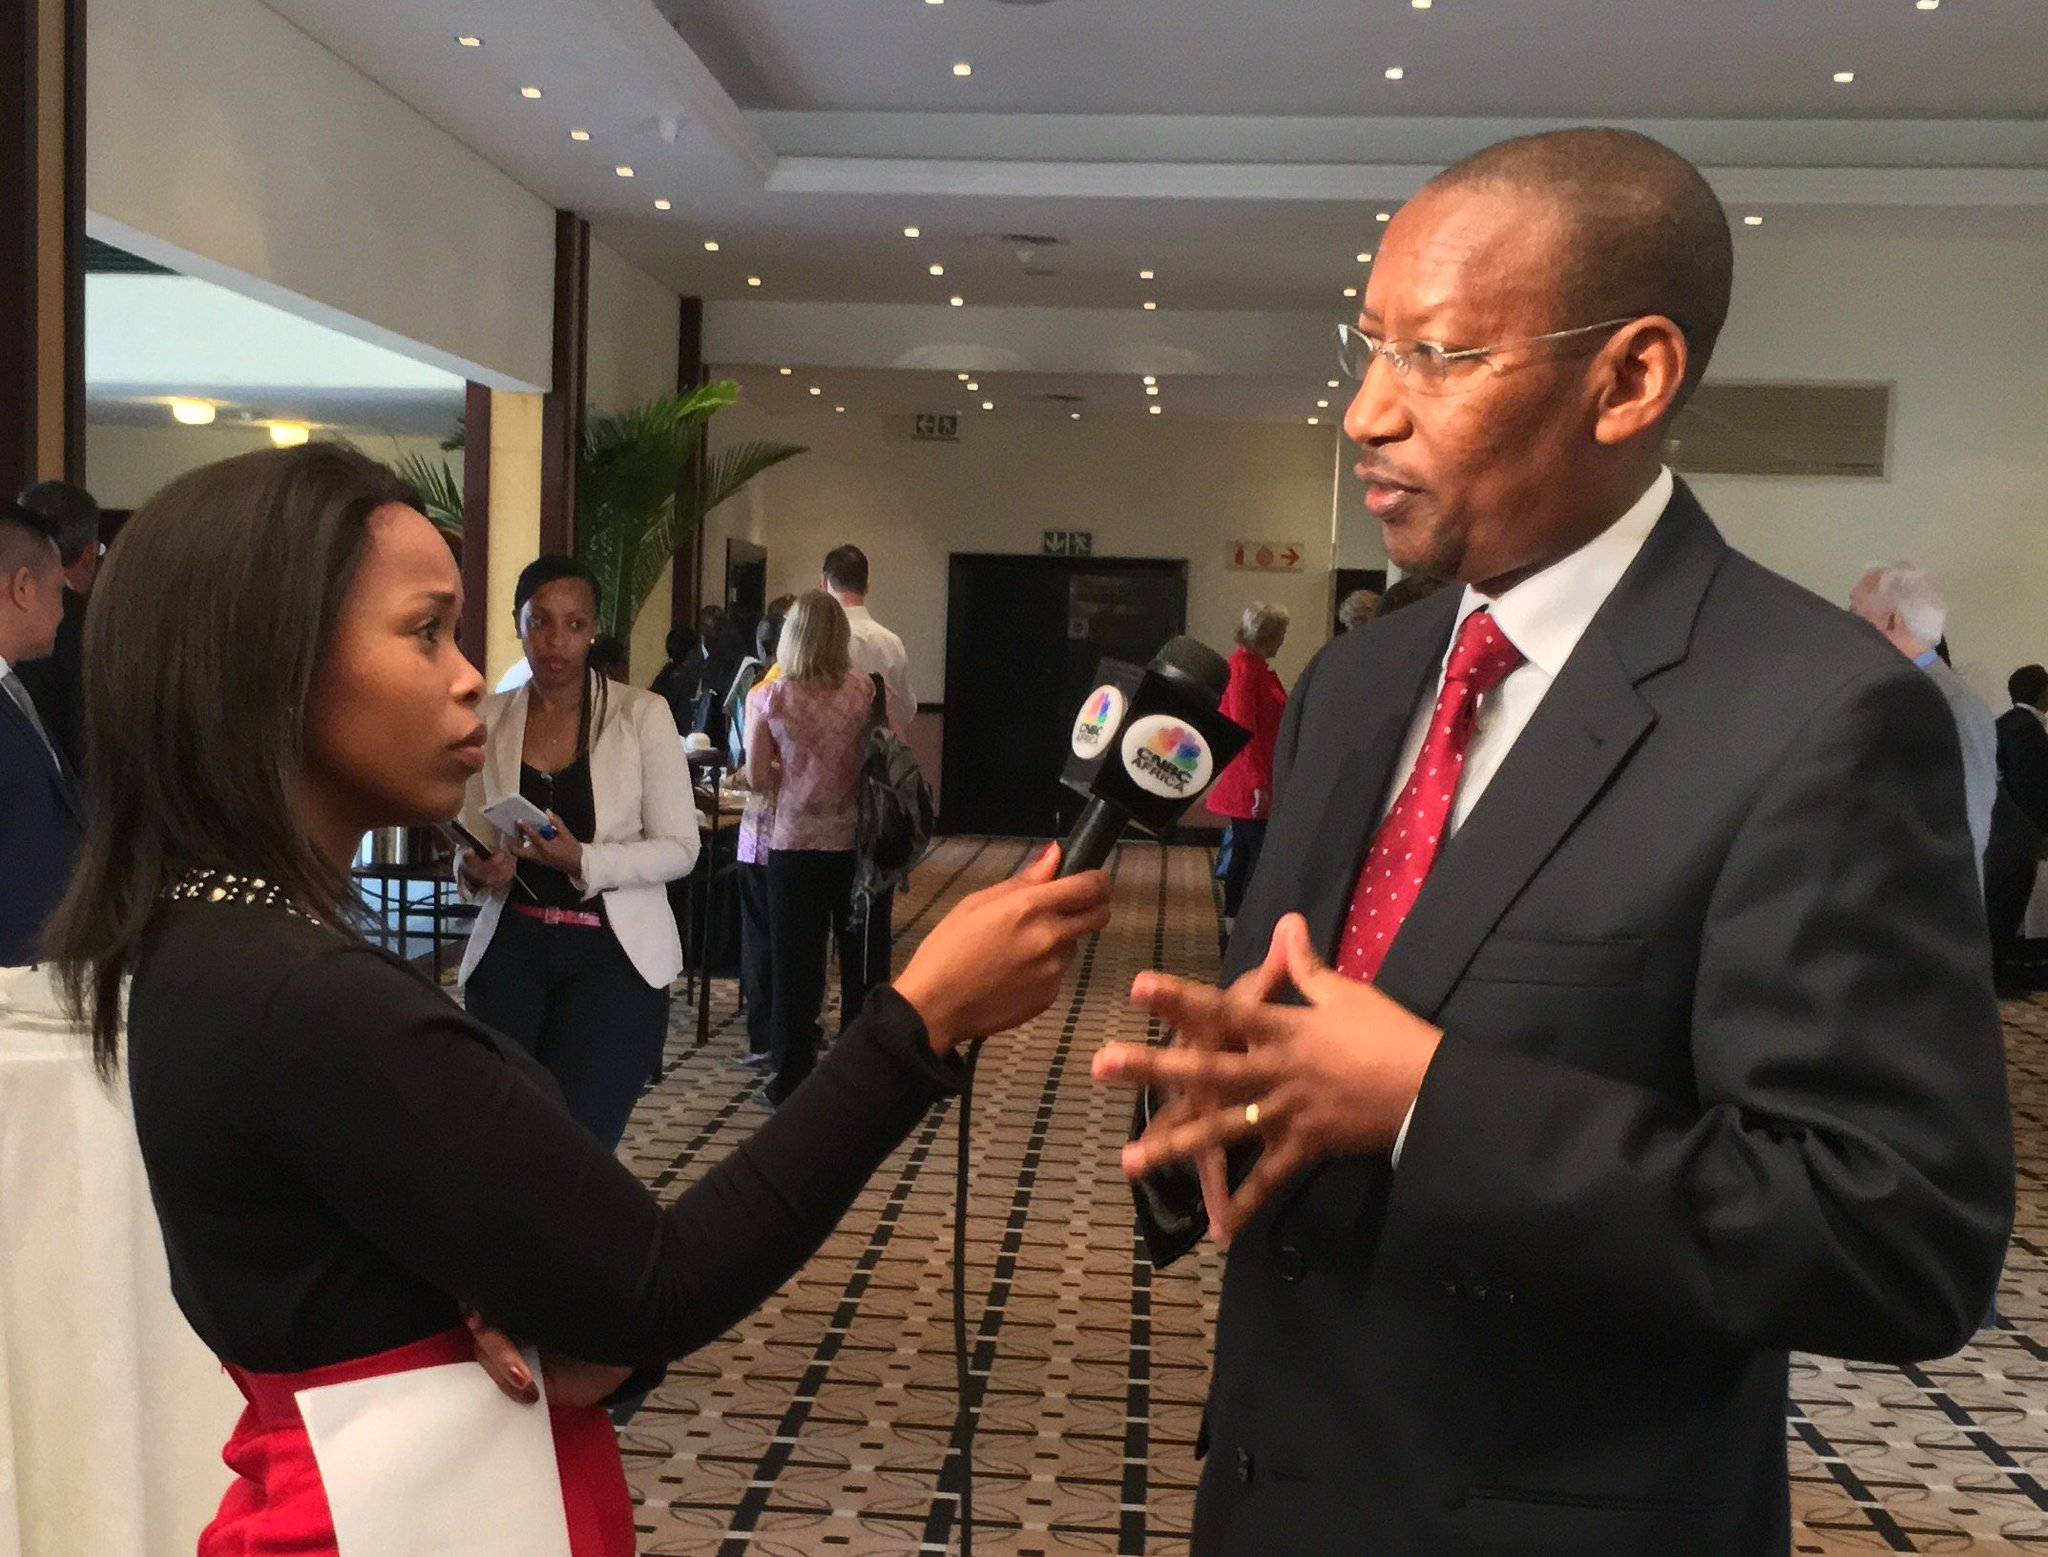 As we get ready, exciting to see @rwangombwajRW  & @cnbcafrica 's @TheRealNozi discussing #FinancialInclusion #clientcentricity #SoFI2016 https://t.co/7SHNDTQGE4